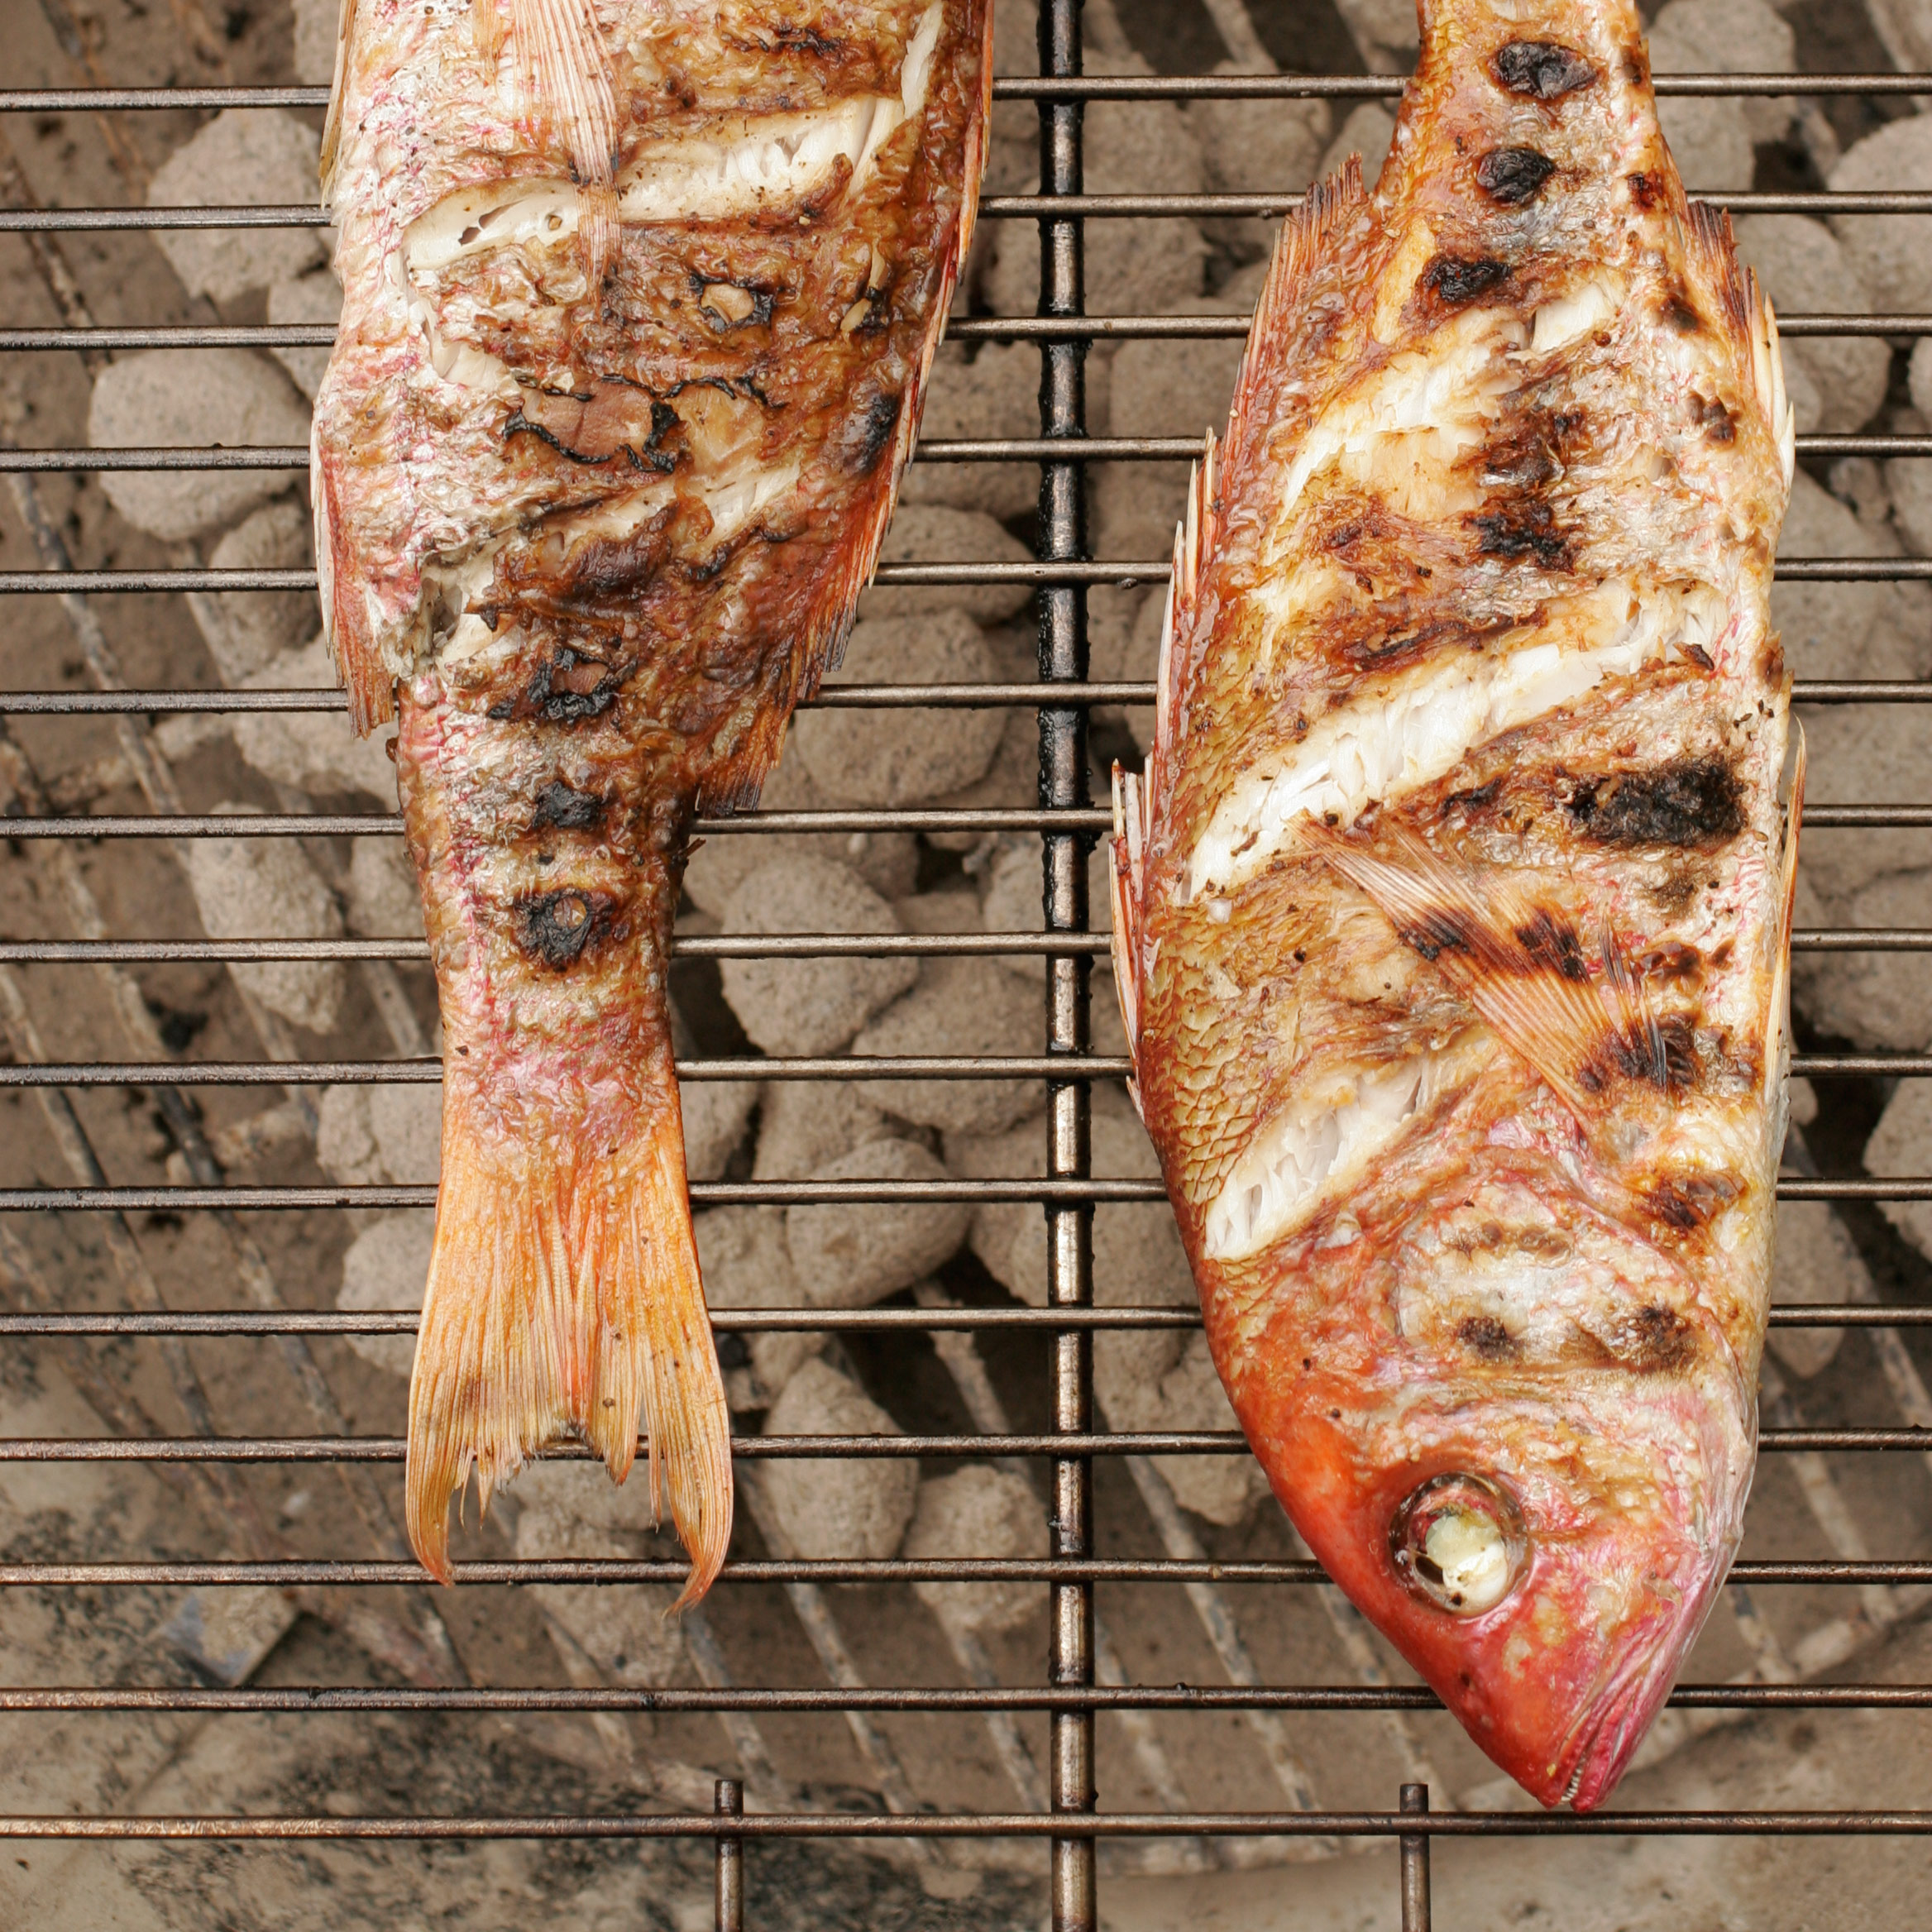 blackened snapper blackened red snapper fillets 4 red snapper fillets ...